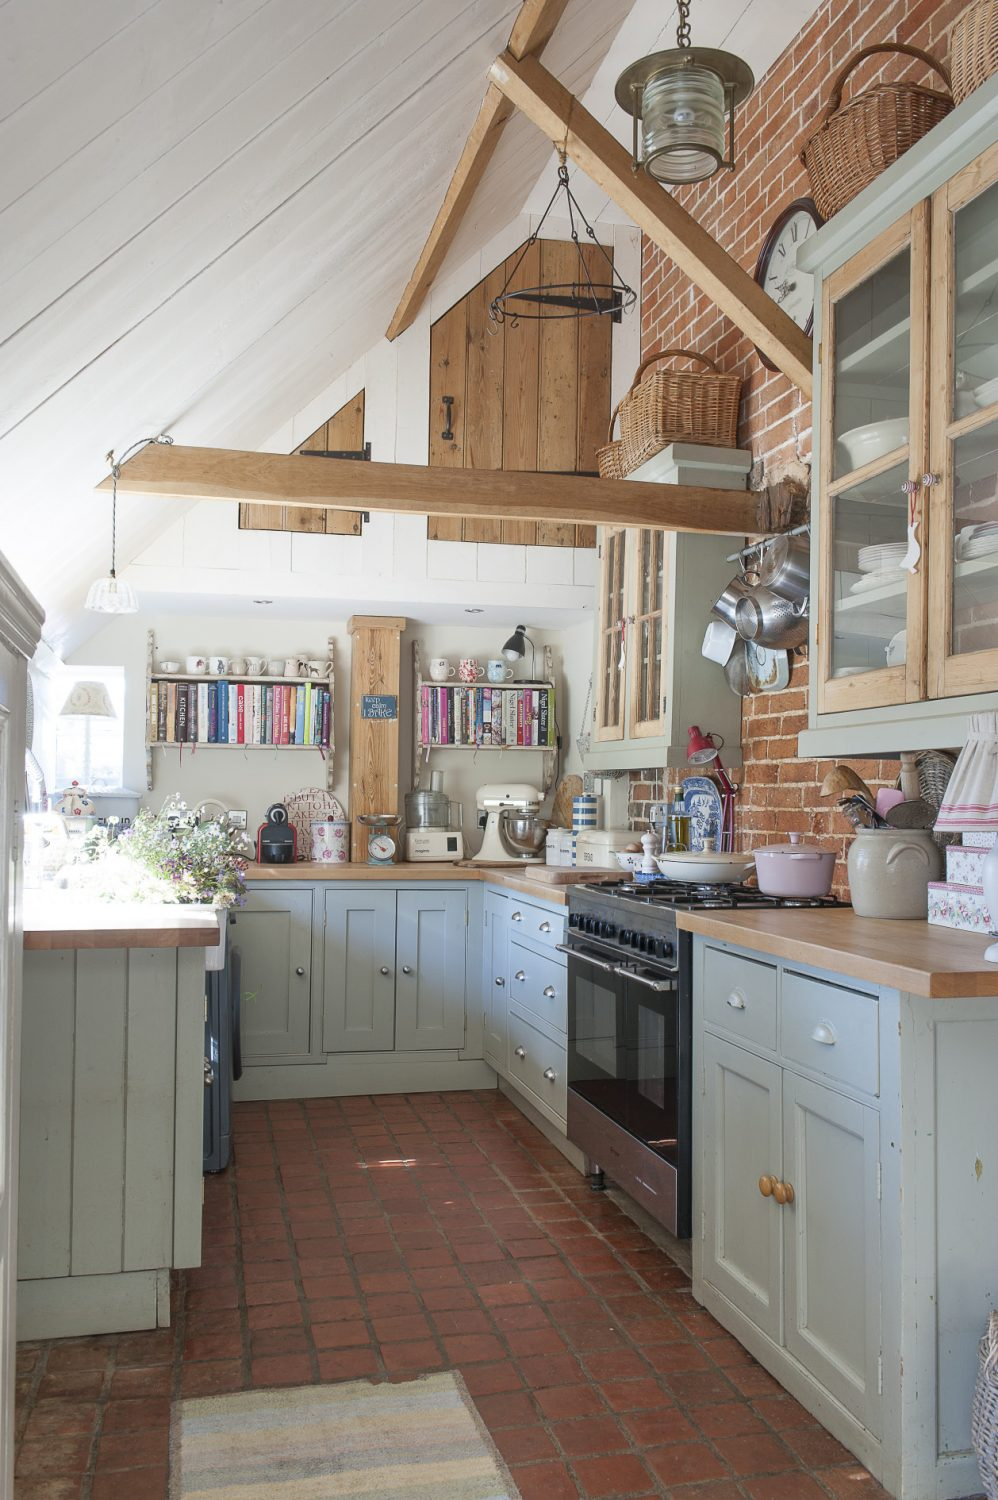 The kitchen sits under the catslide roof at the back of the farmhouse and is made from a host of up-cycled and recycled materials